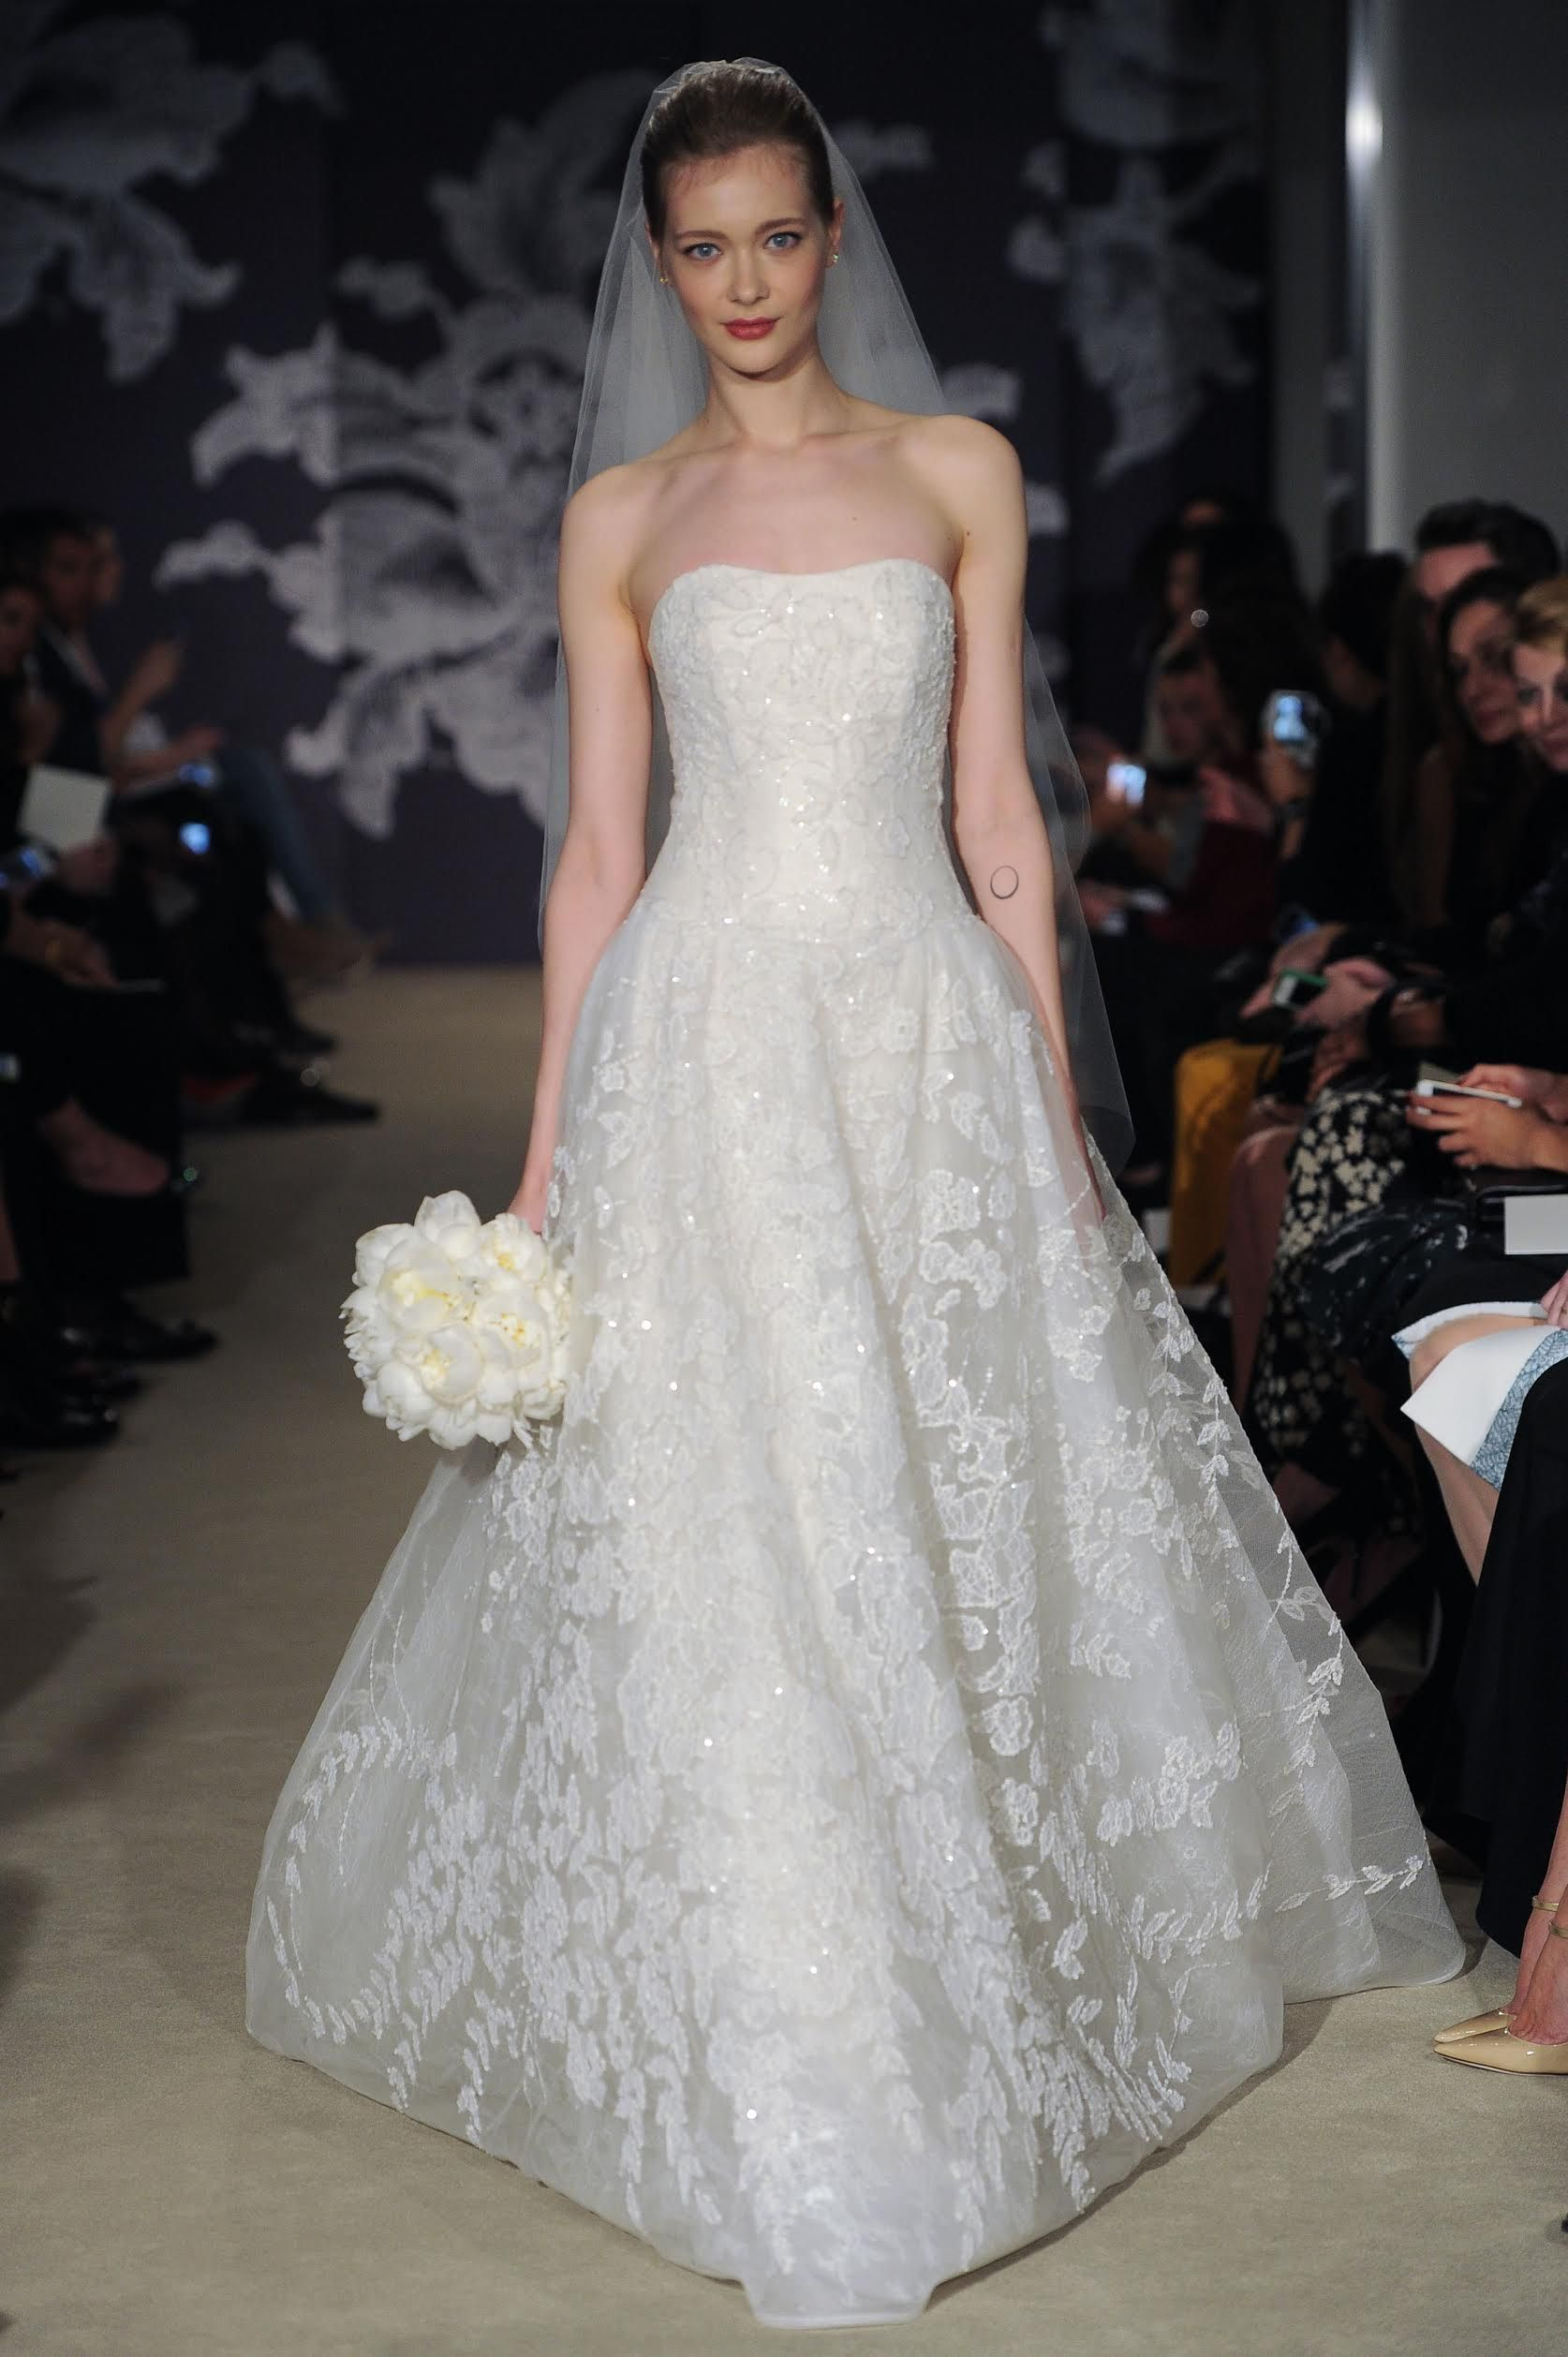 Elite wedding dresses  Carolina Herrera uColetteu gown Photo courtesy of Carolina Herrera